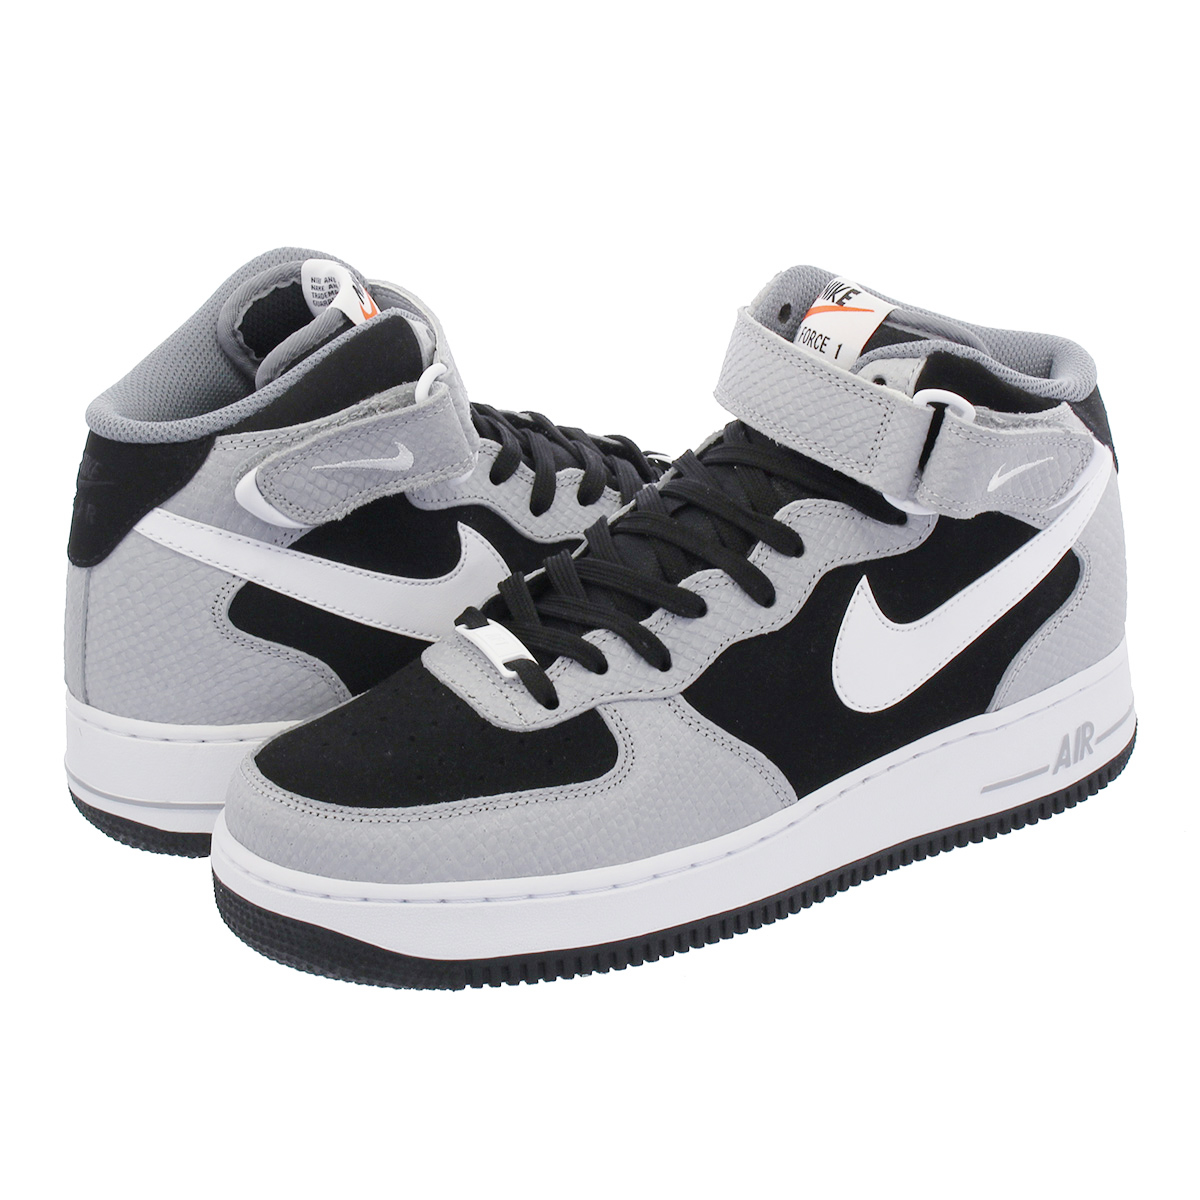 NIKE AIR FORCE 1 MID '07 ナイキ エア フォース 1 ミッド '07 BLACK/WHITE/WOLF GREY 315123-024